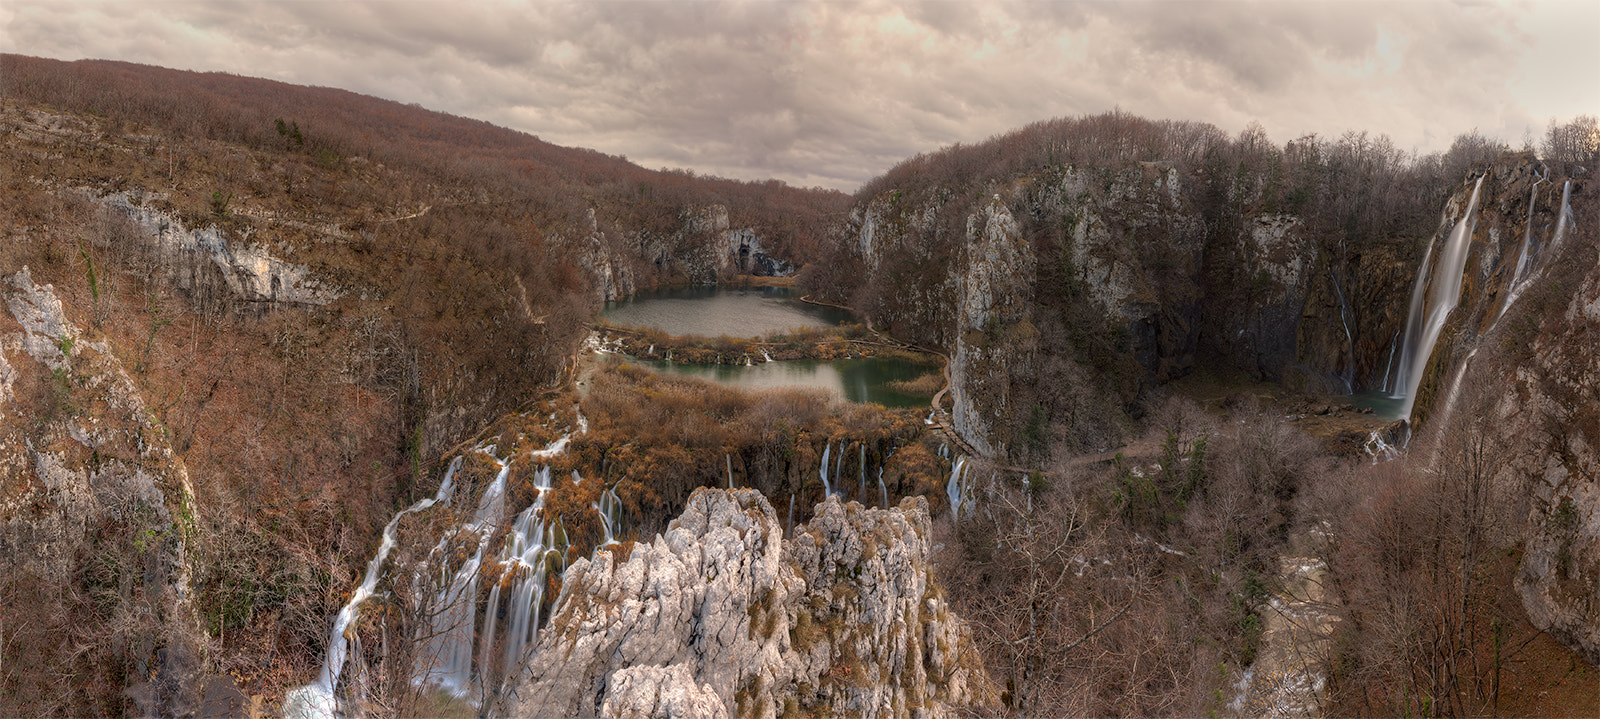 Photograph Plitvice lakes canyon by Tomislav Gašparović on 500px